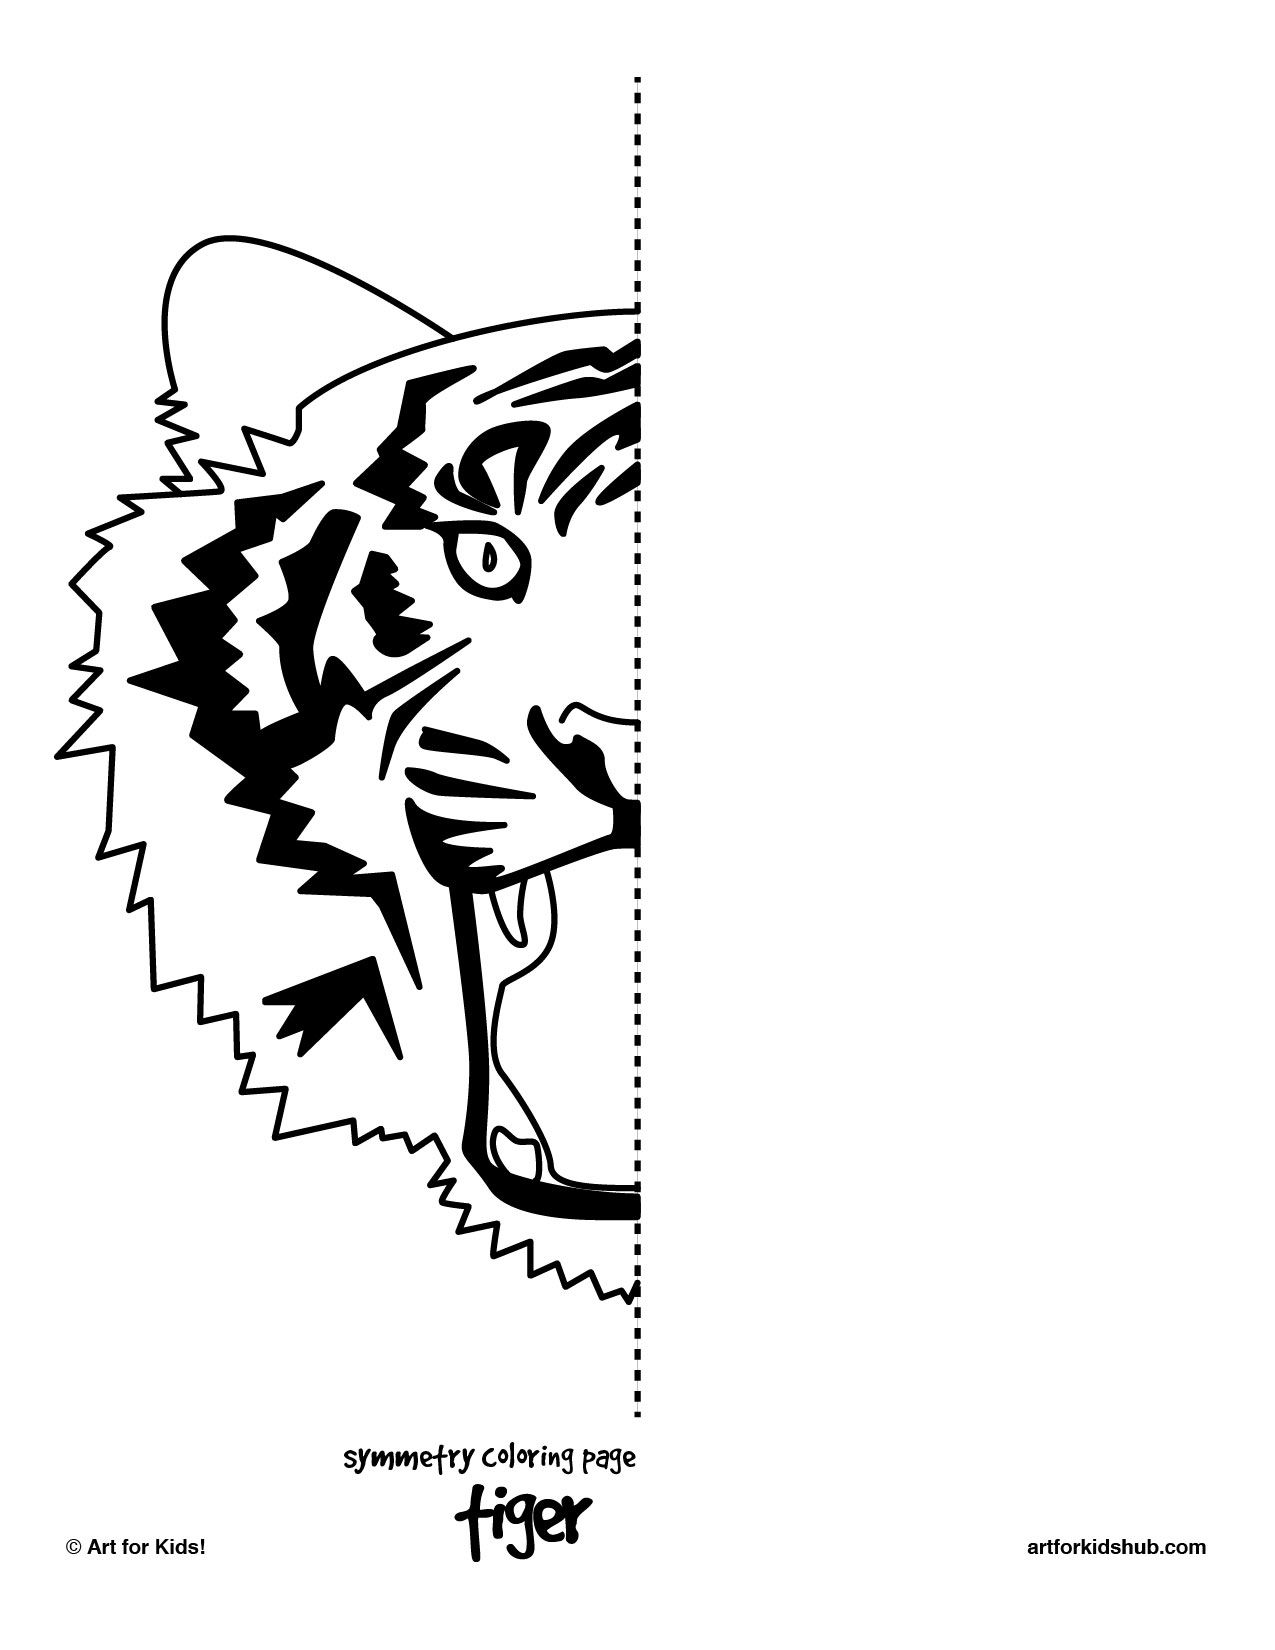 hight resolution of Symmetry ART Activity - 5 Free Coloring Pages - Art for Kids   Symmetry  art